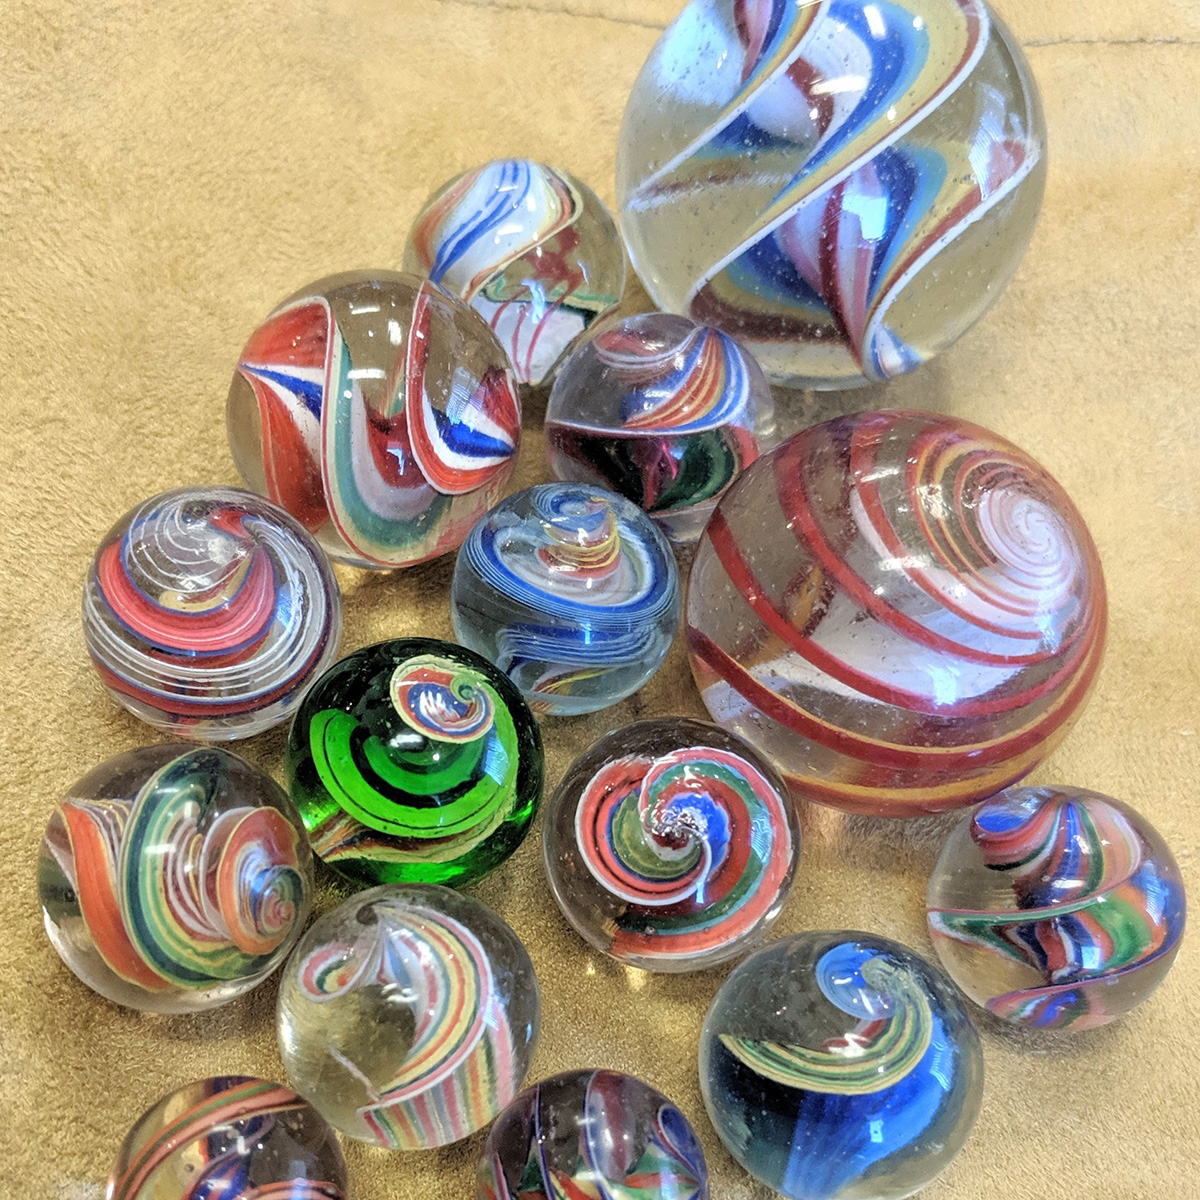 Group of Ribbon Core Swirl marbles